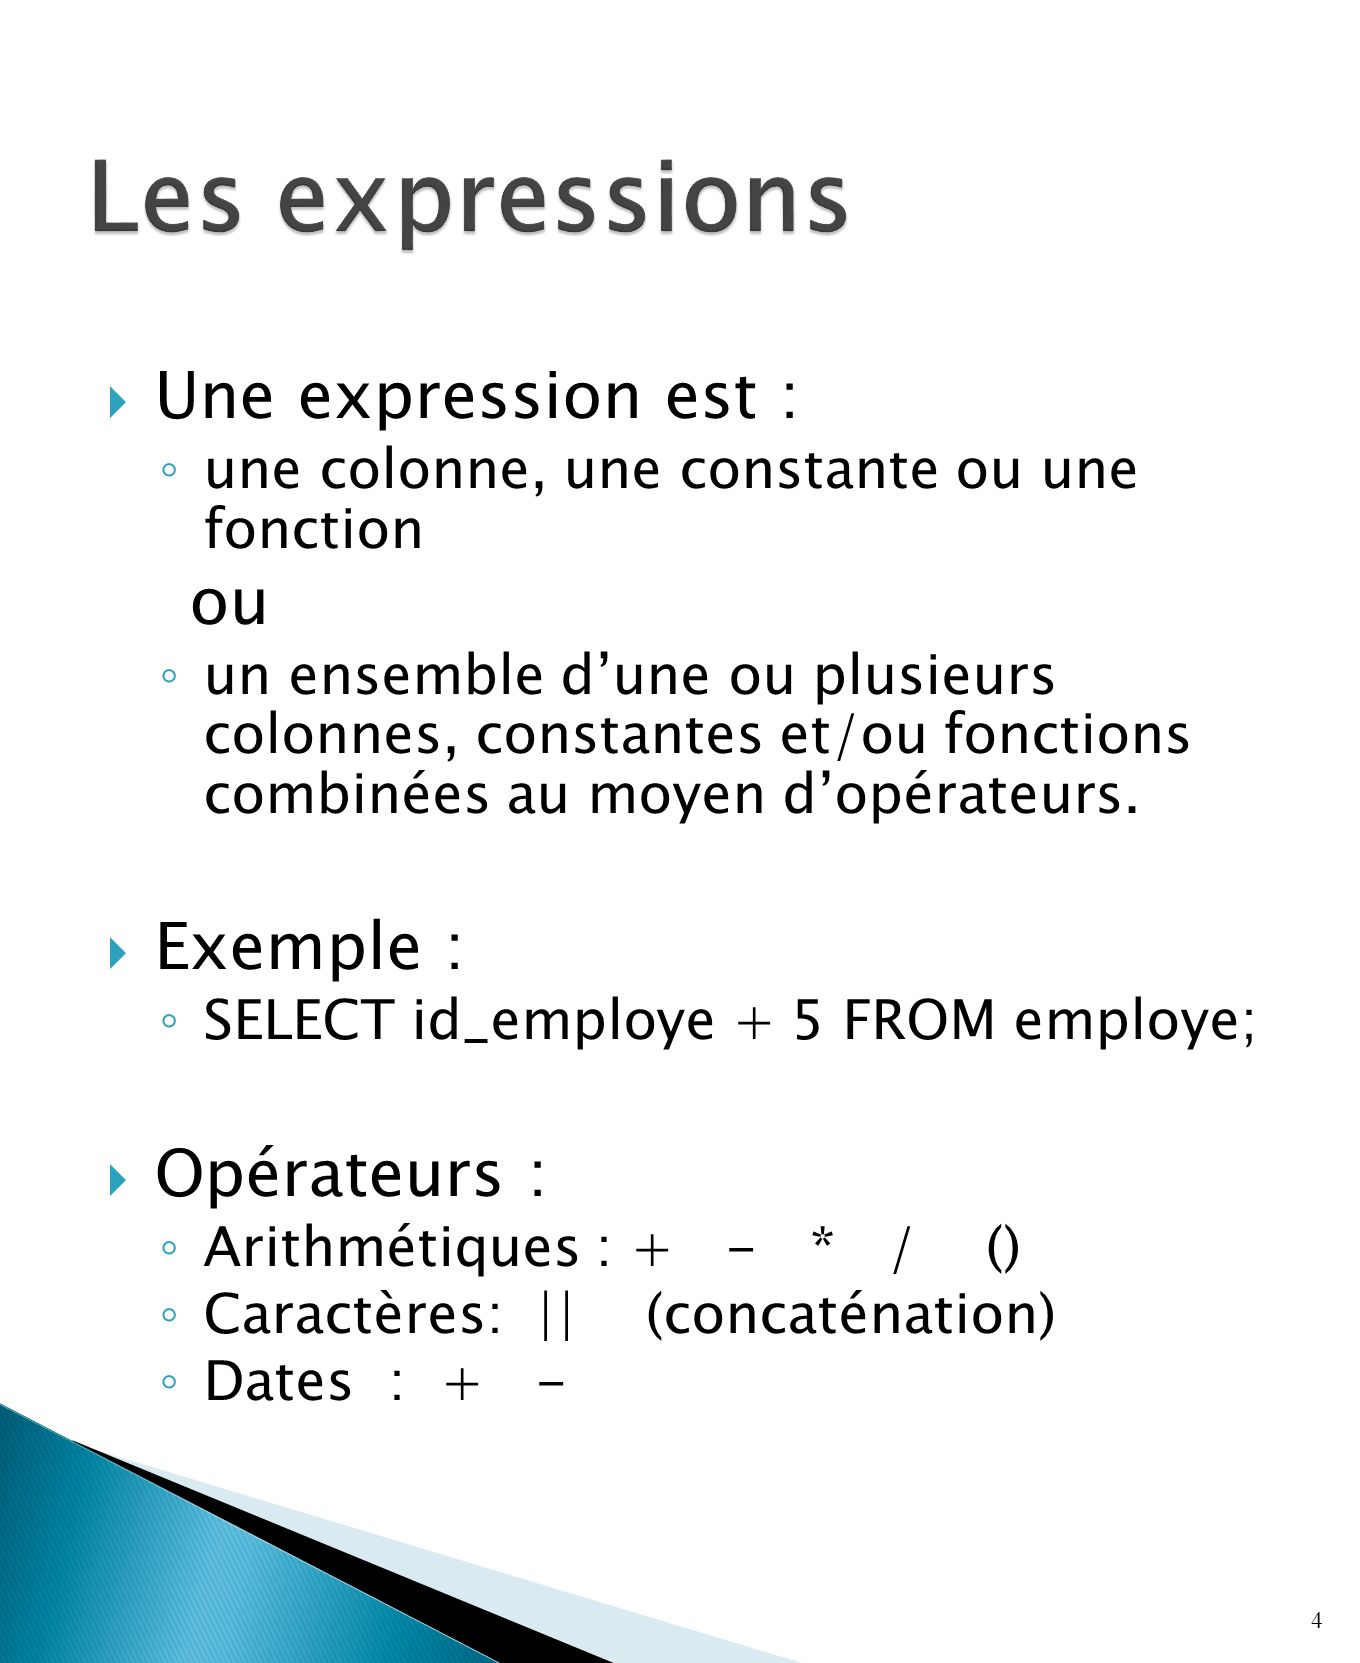 SELECT nom FROM departement WHERE id BETWEEN 30 AND 70; est équivalent à … WHERE id >= 30 AND id<= 70; Donc le BETWEEN est inclusif.